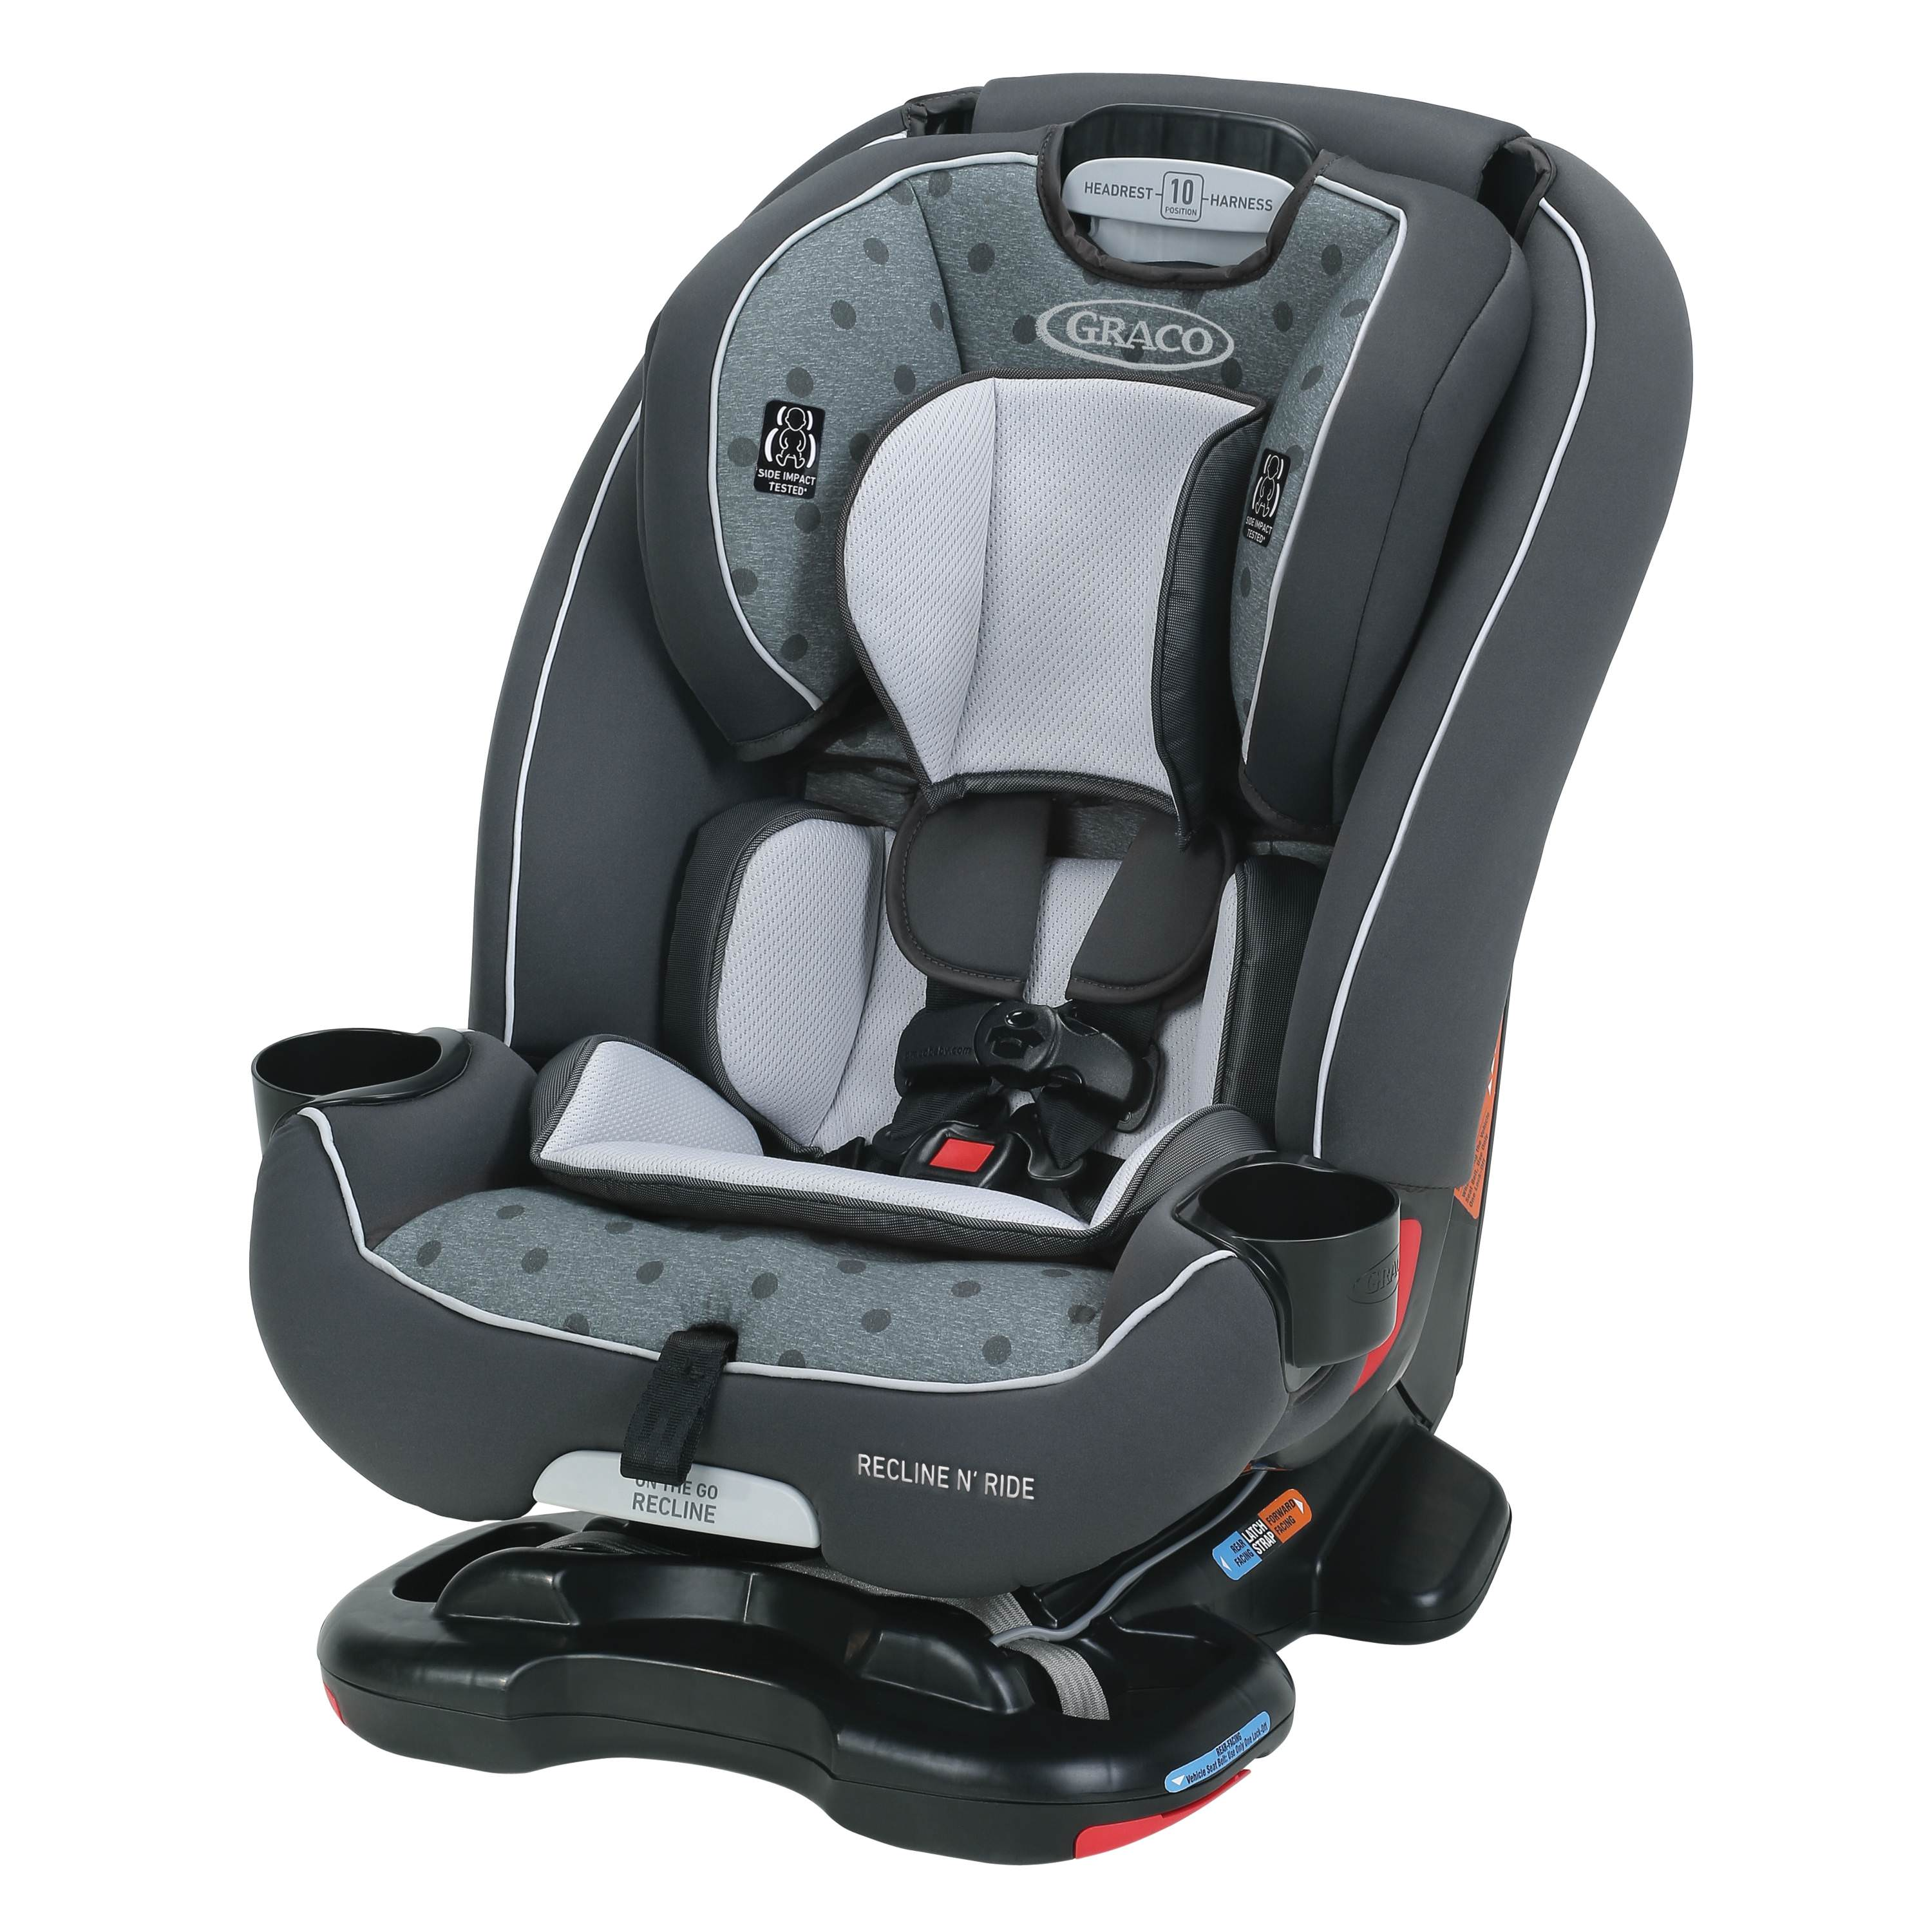 Graco Recline N Ride All-in-One Car Seat  - Clifton